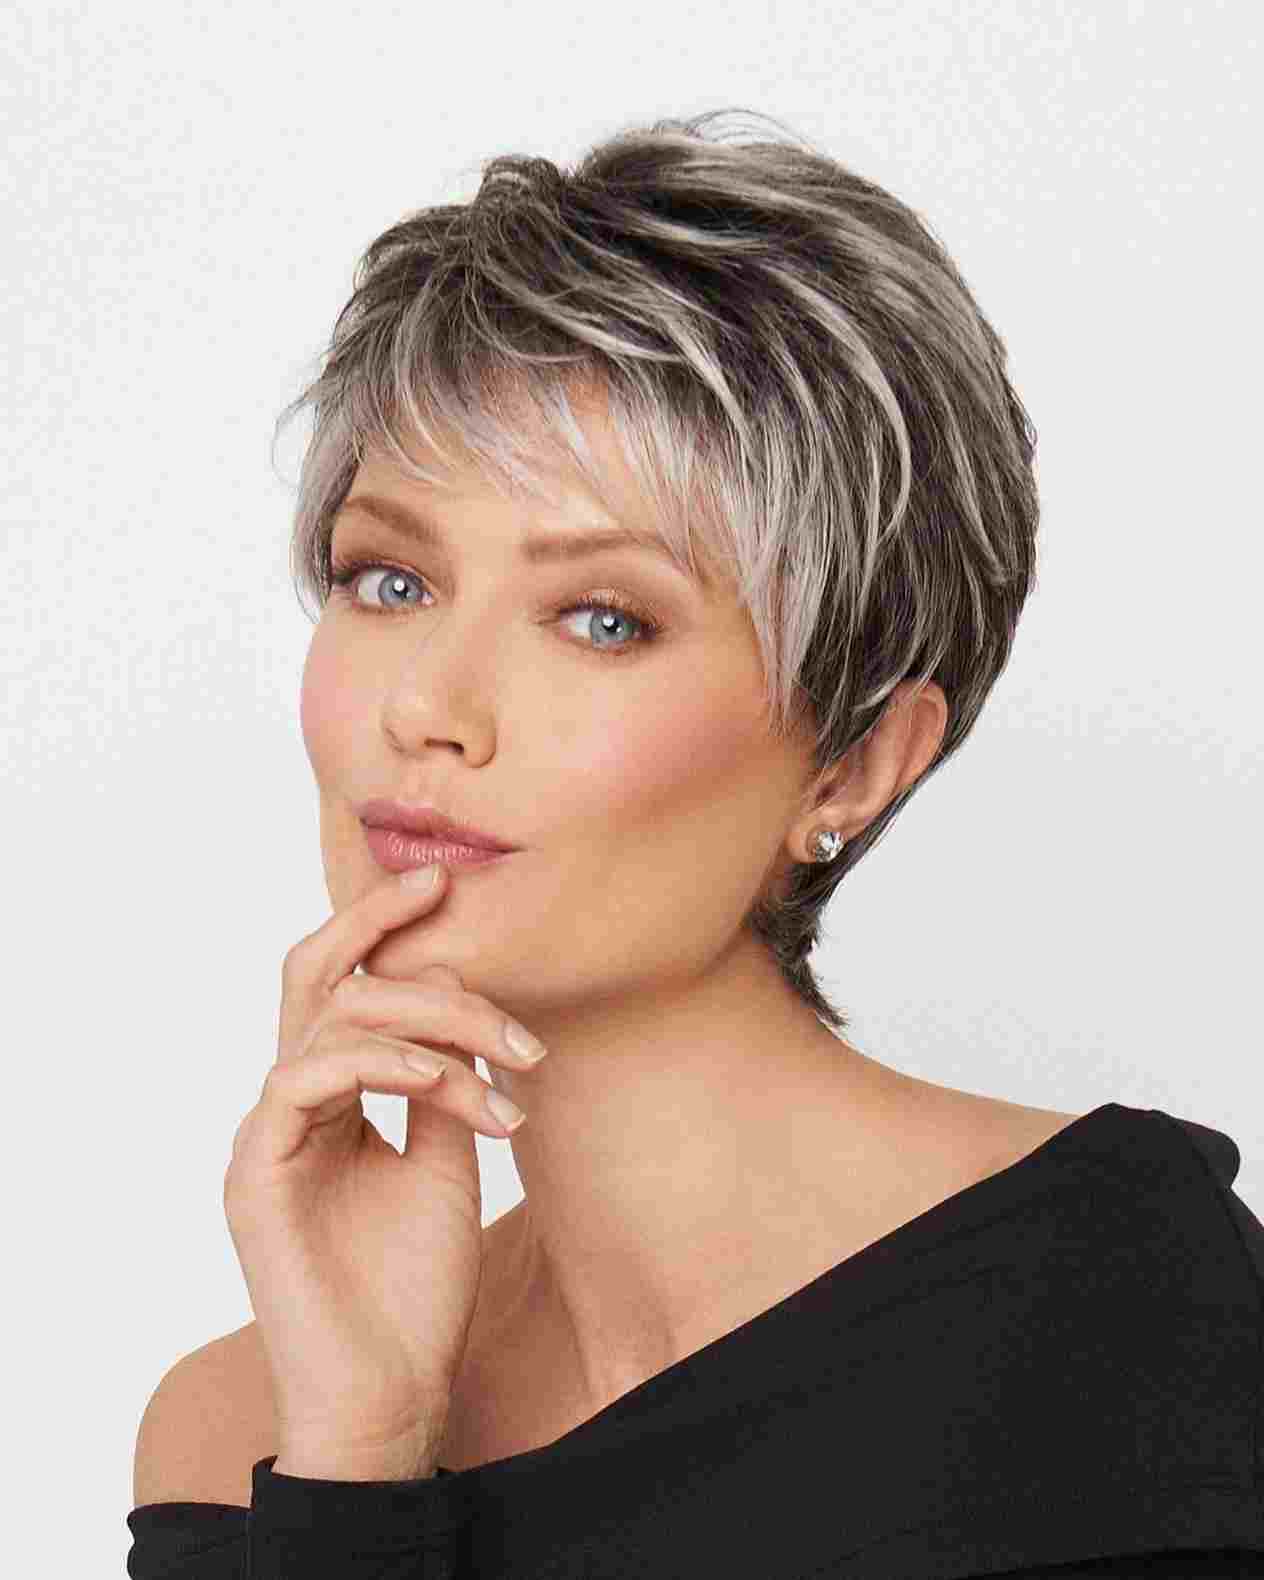 Haircut For Thick Curly Hair Short Hairstyles Rhguinotkucalepotecom Pertaining To Short Haircuts Curly Hair Round Face (View 20 of 25)